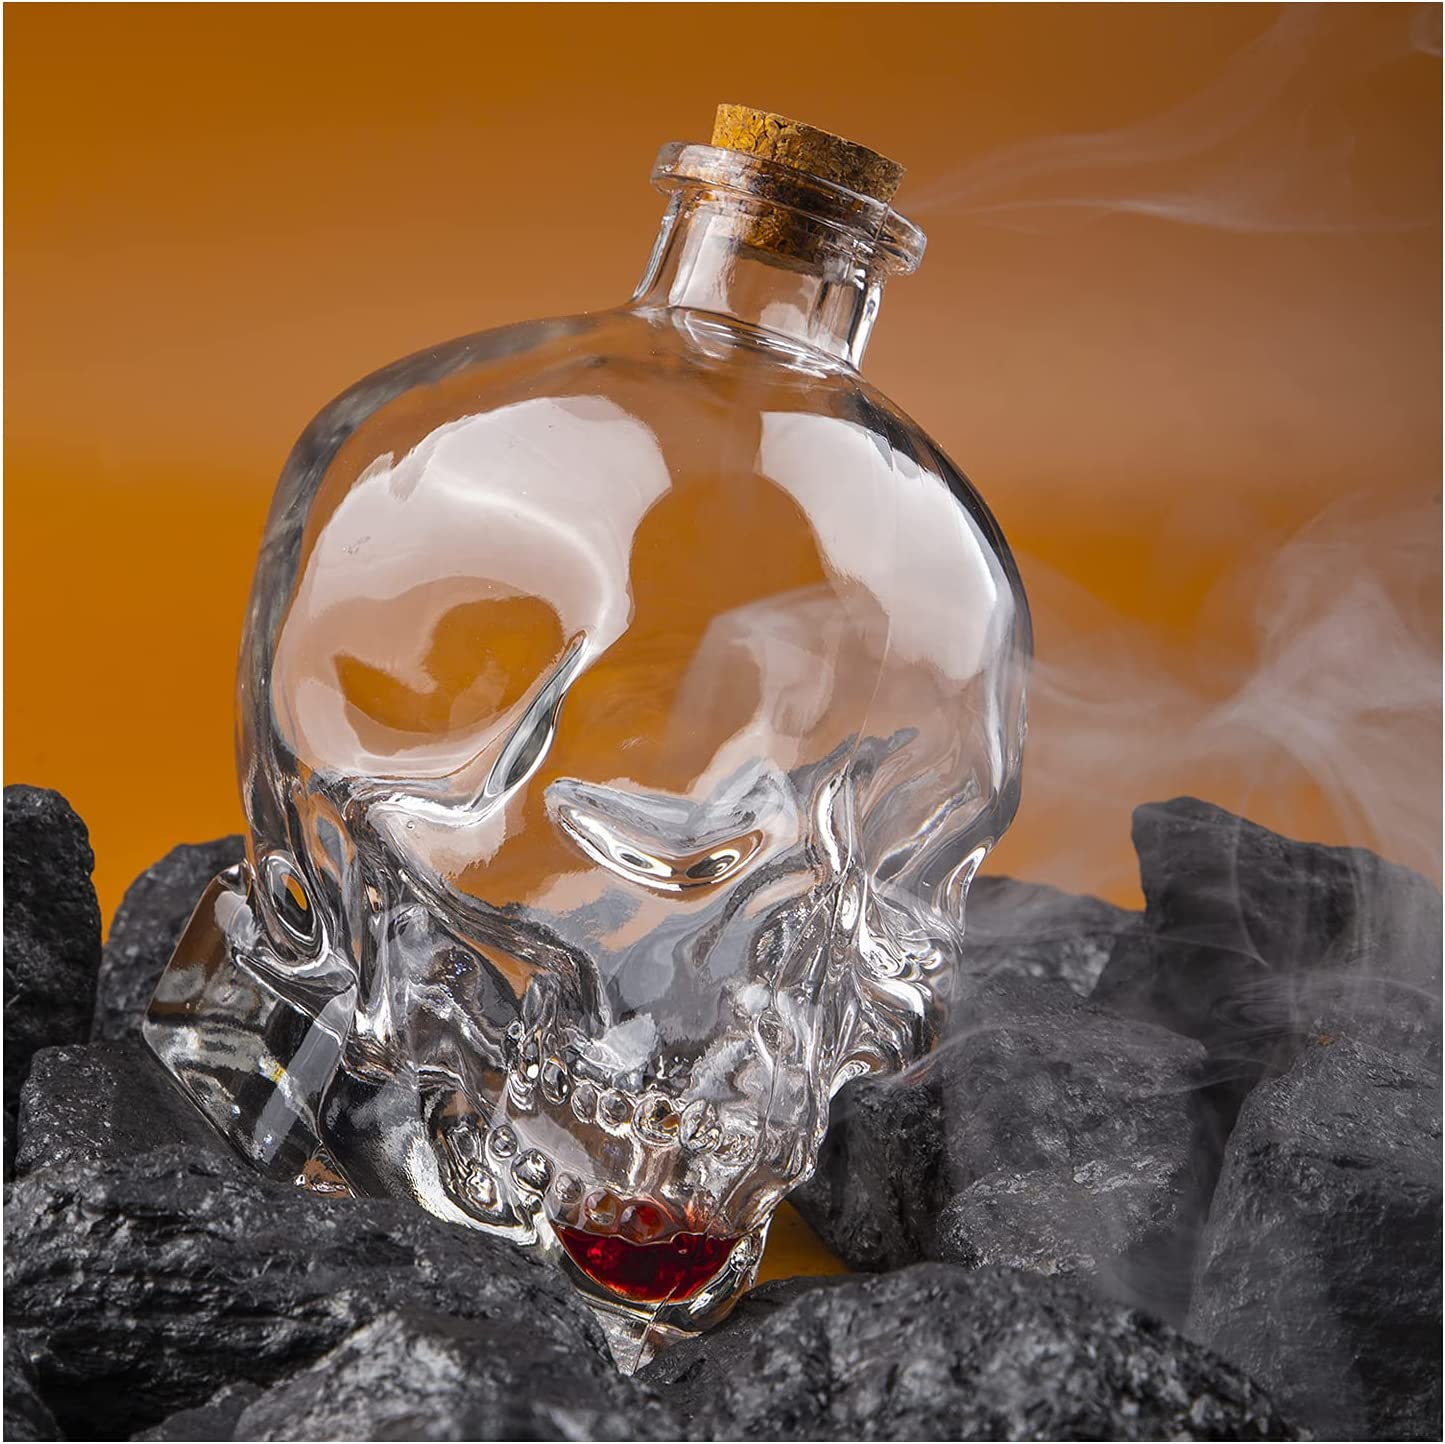 VOSOL 750ml Skull Whiskey Bottle Decanter Beauty products B Mail order cheap Glass Creative